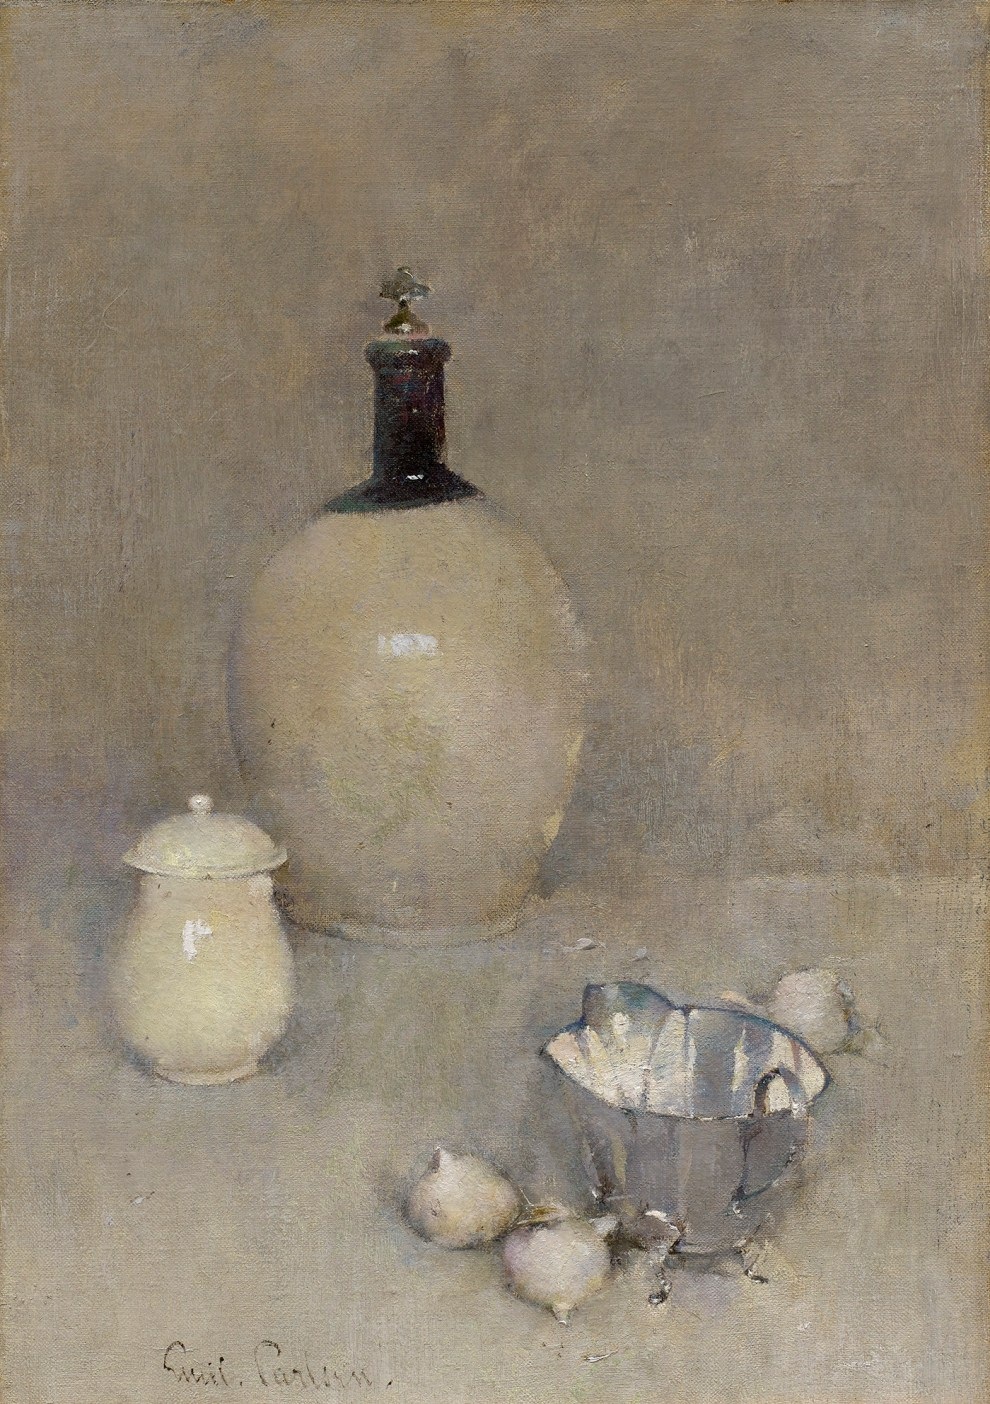 Emil Carlsen : Still life [jug, pot, bottom of kettle], 1920.